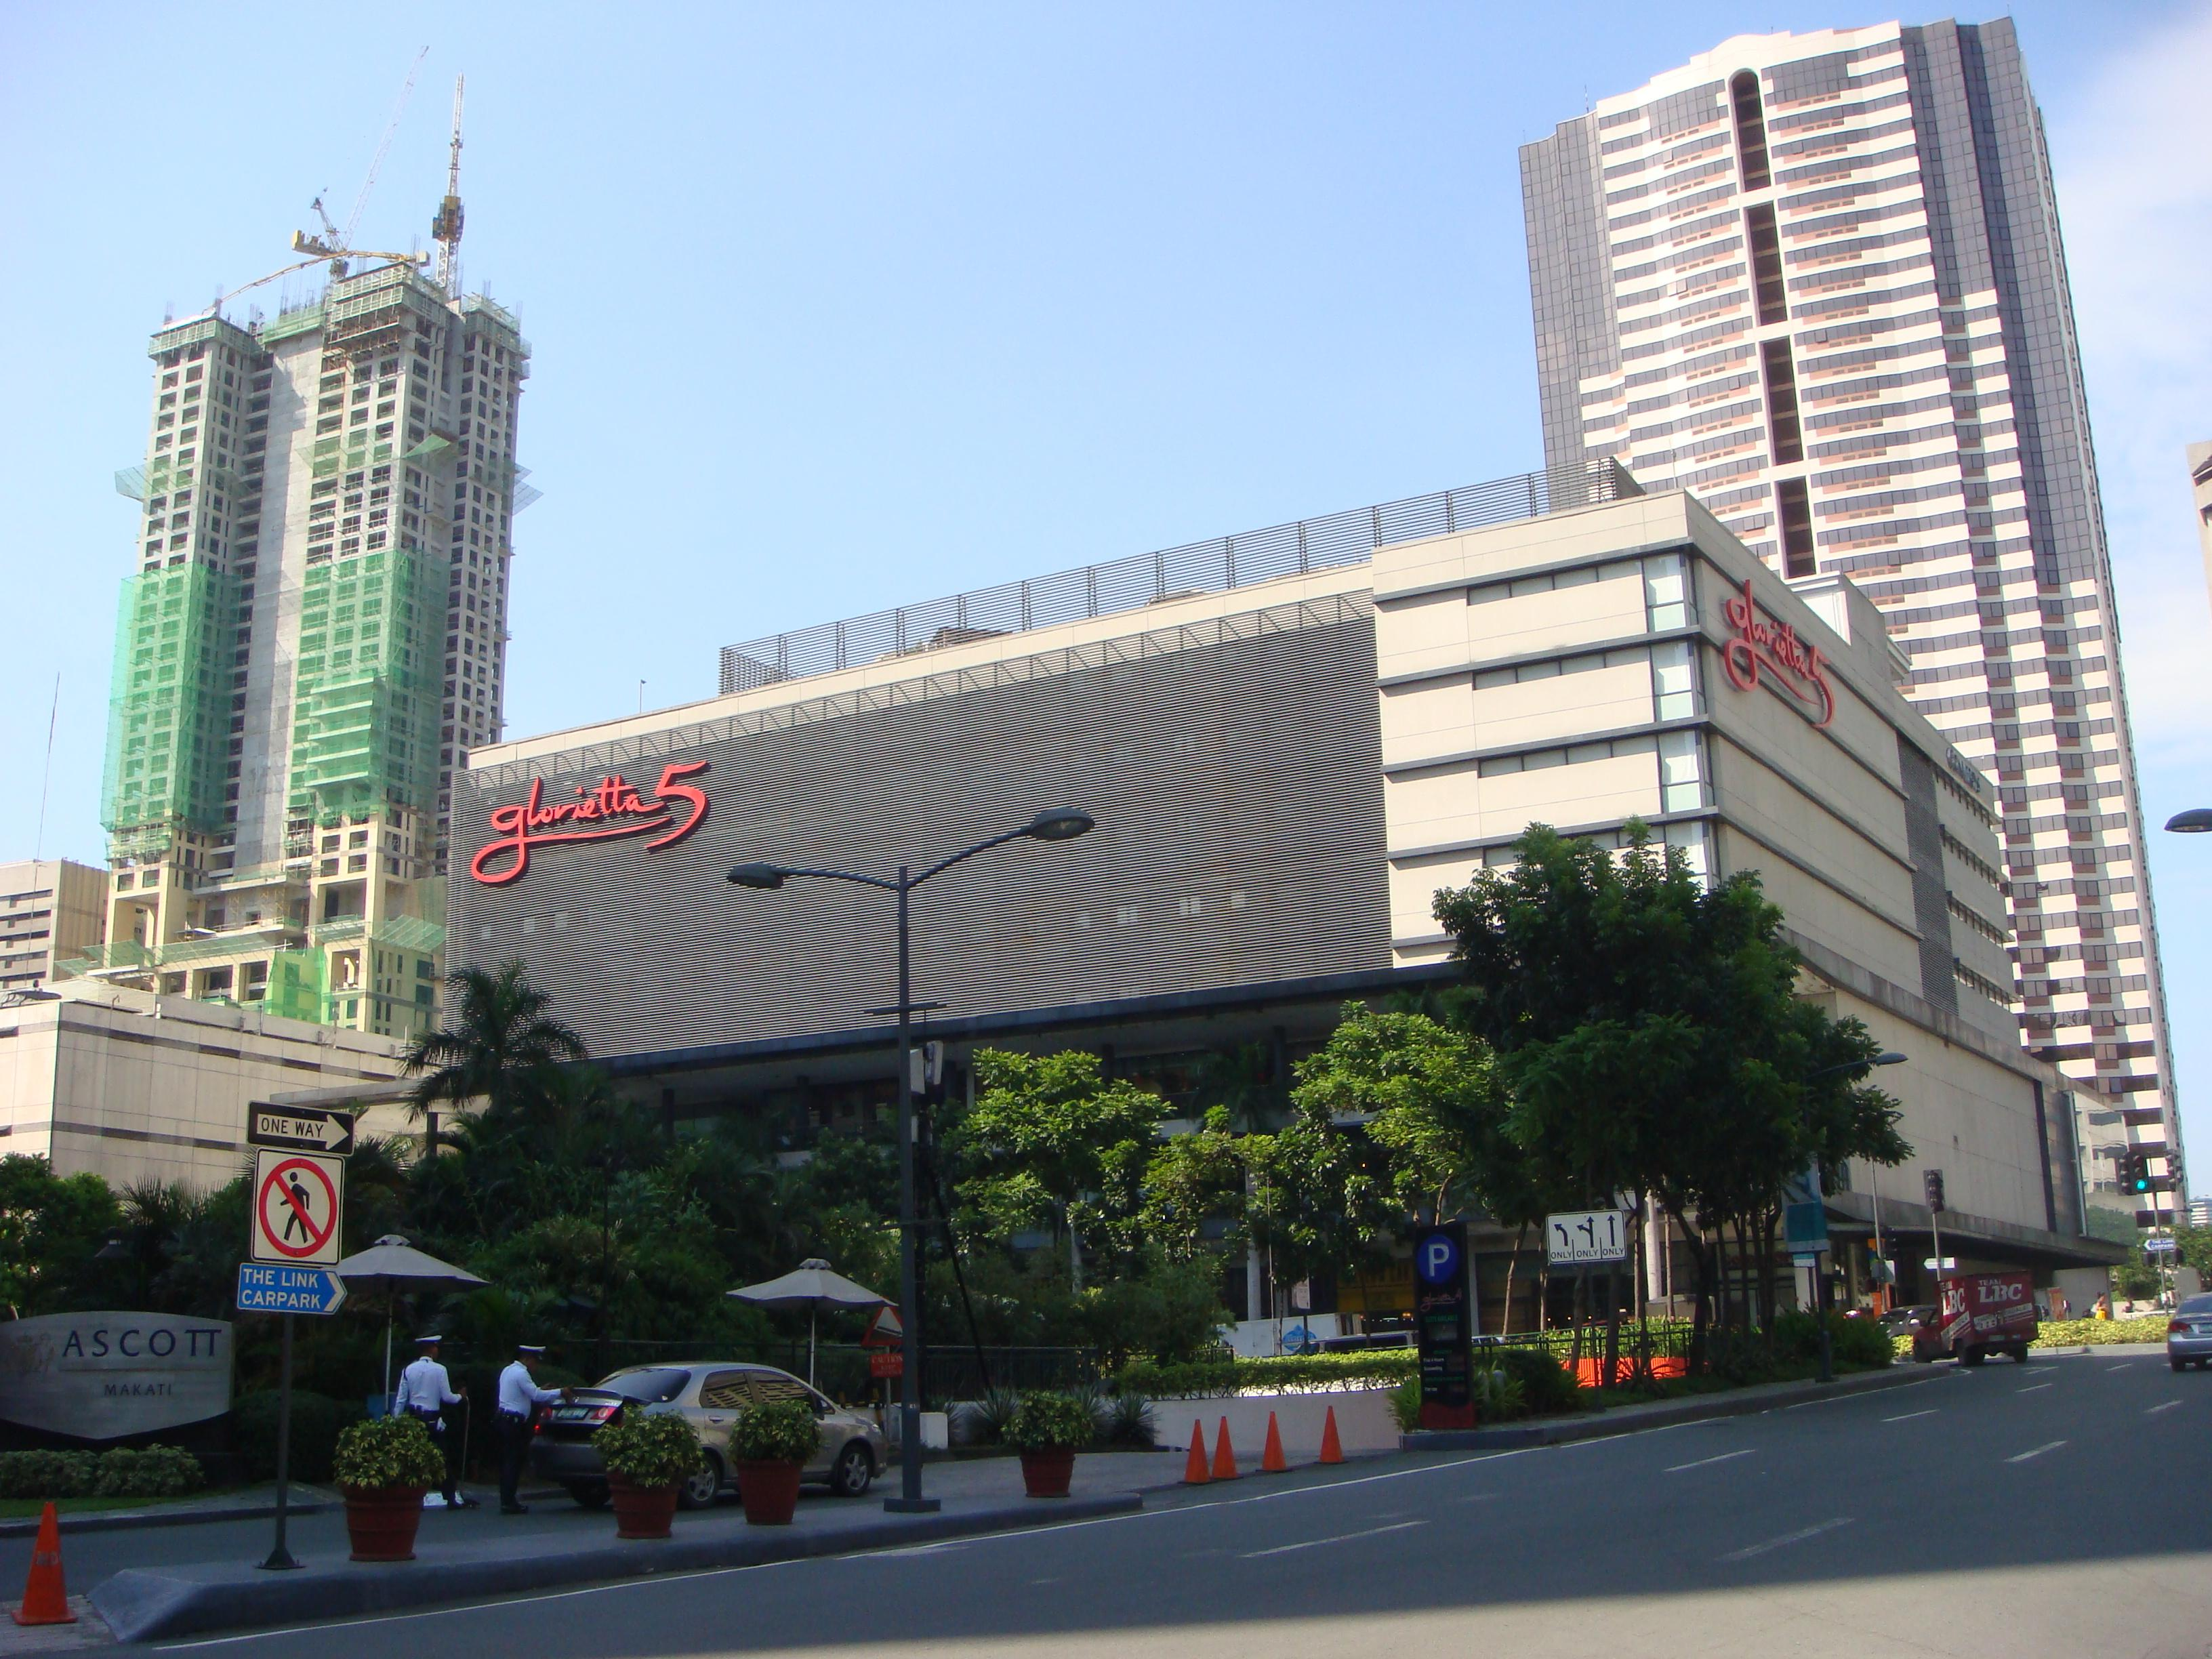 makati map philippines with Glorietta The Premier Mall on April 2016 Earthquakes Are They Indicators Of An Impending Disaster In Ph likewise Metro Market 21 Market 21 further Cebu Pacific further Grand Hyatt Residences Bgc additionally Glazed Walls Of Makati.